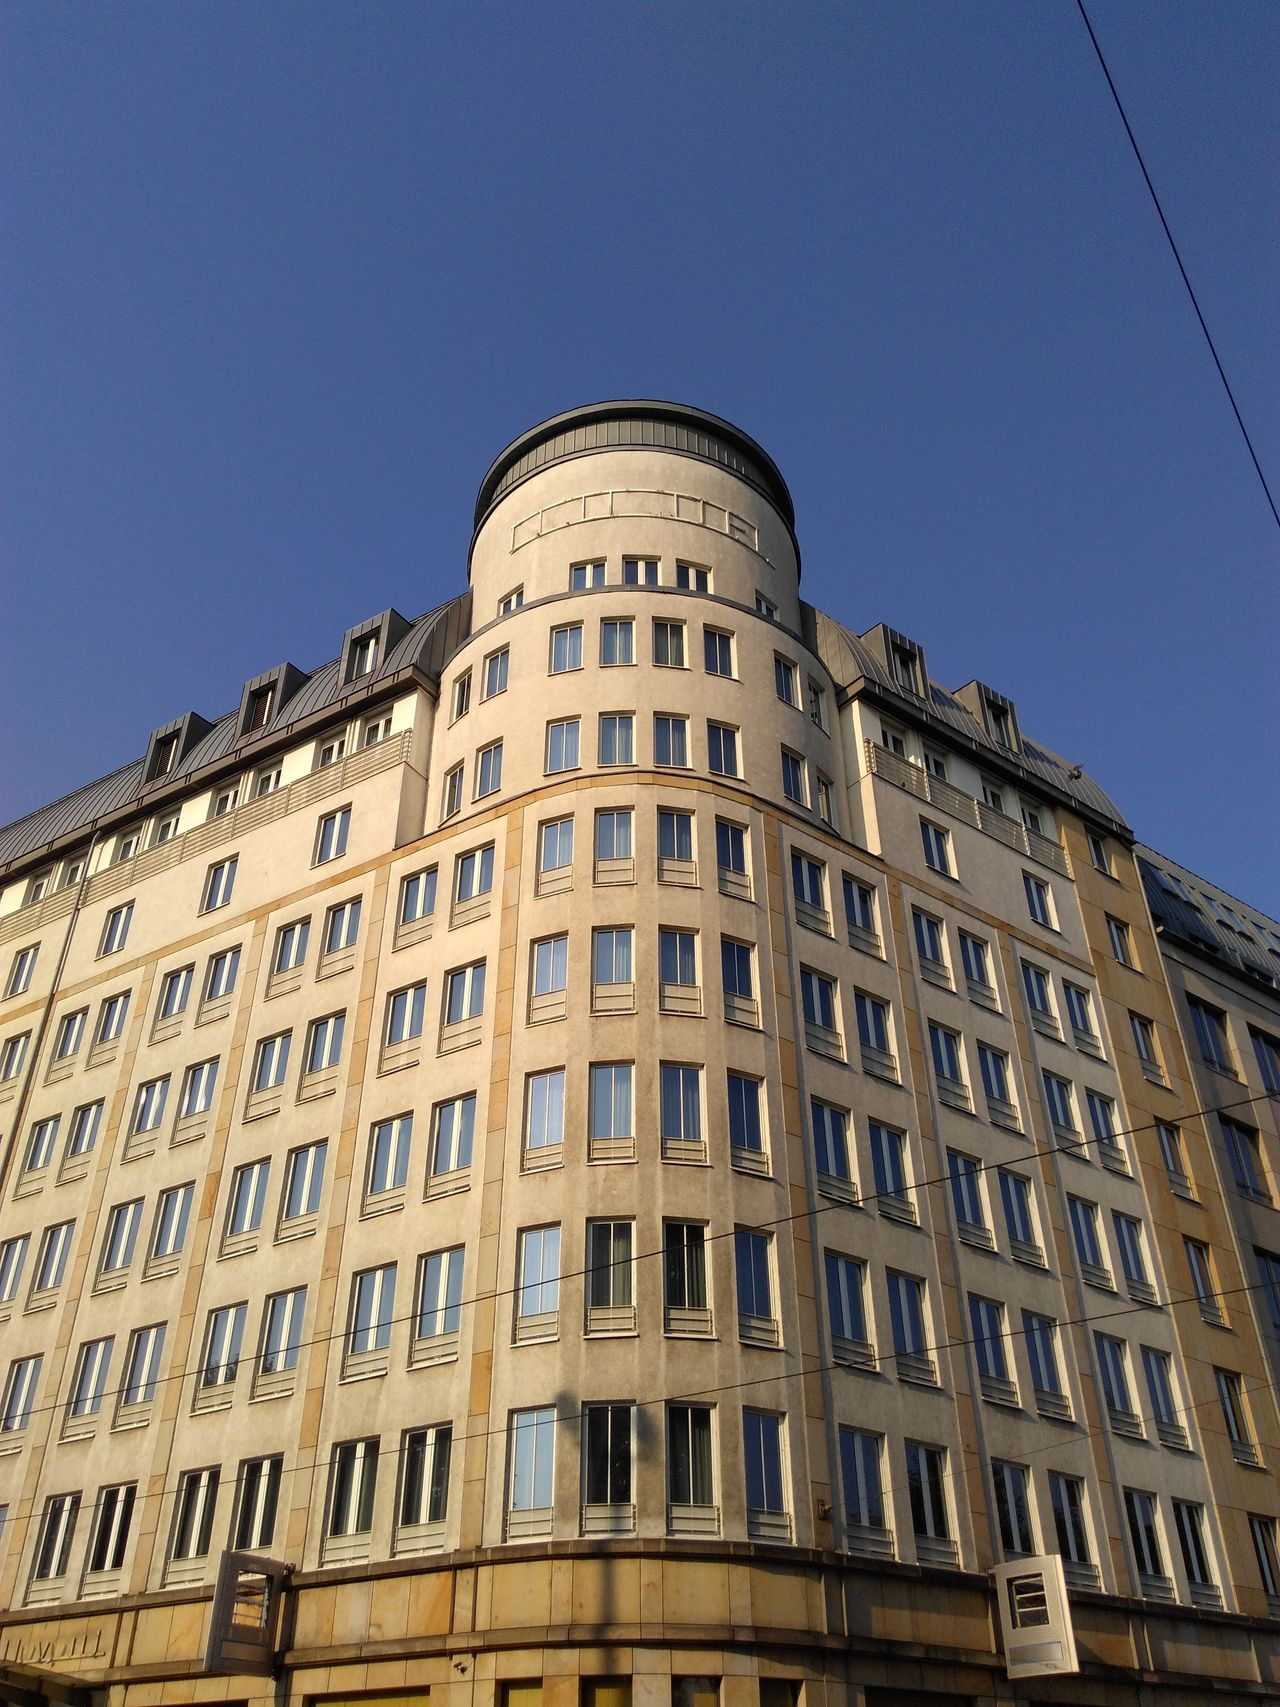 Building Exterior Architecture Built Structure Low Angle View City Leipzig Germany Deutschland Hotel City Sachsen